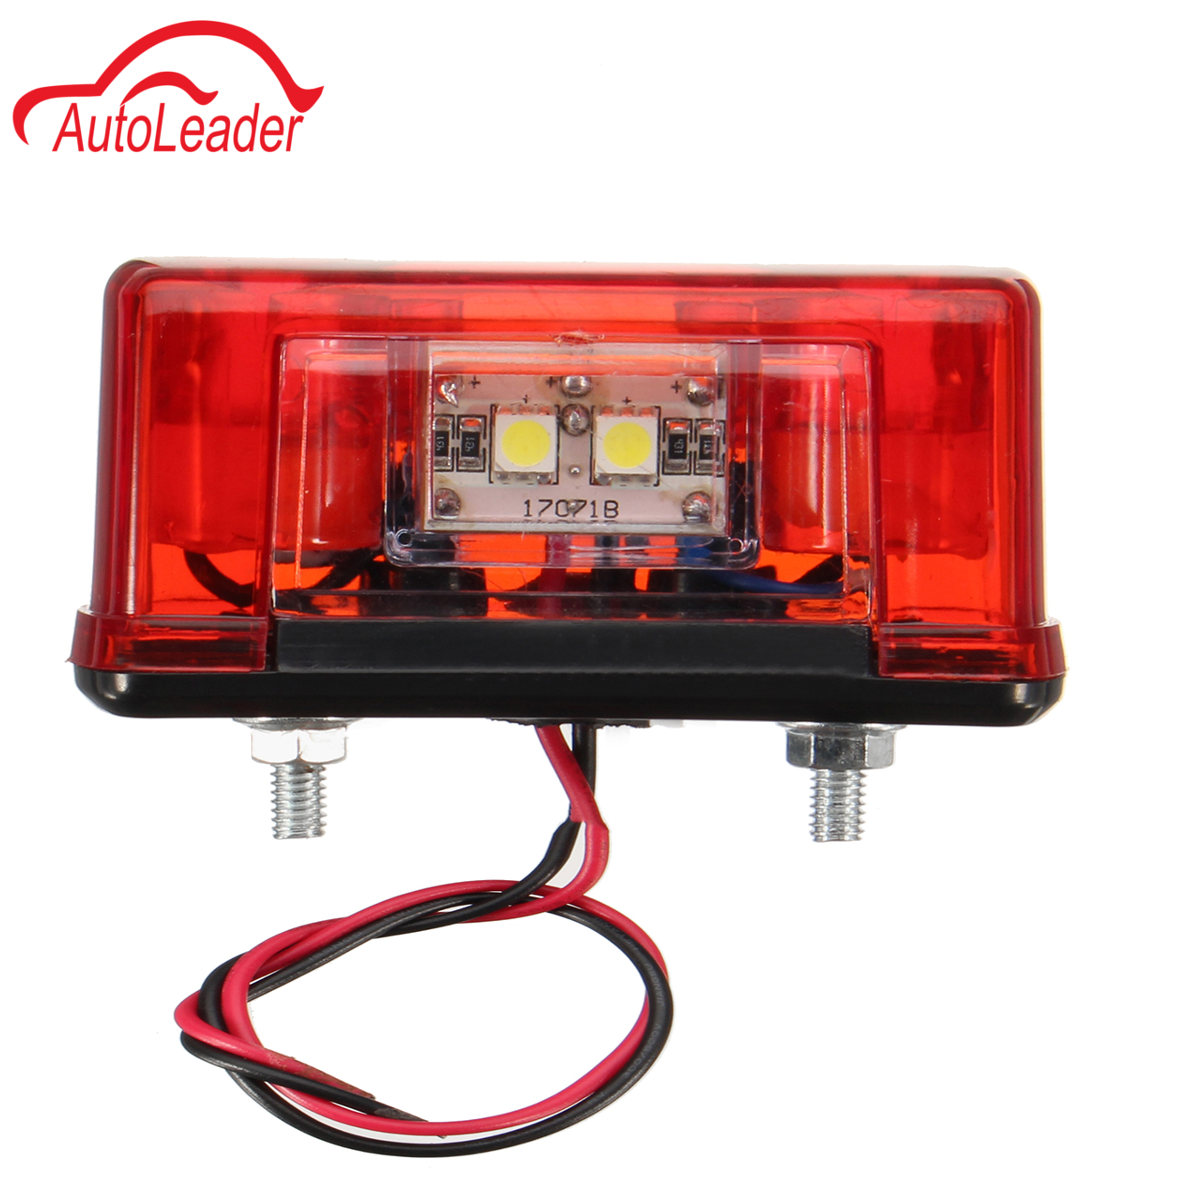 1Pcs License Plate LED Light White Red 12V / 24V Truck Car 4LED Side Light Rear Tail Lamp cawanerl car canbus led package kit 2835 smd white interior dome map cargo license plate light for audi tt tts 8j 2007 2012